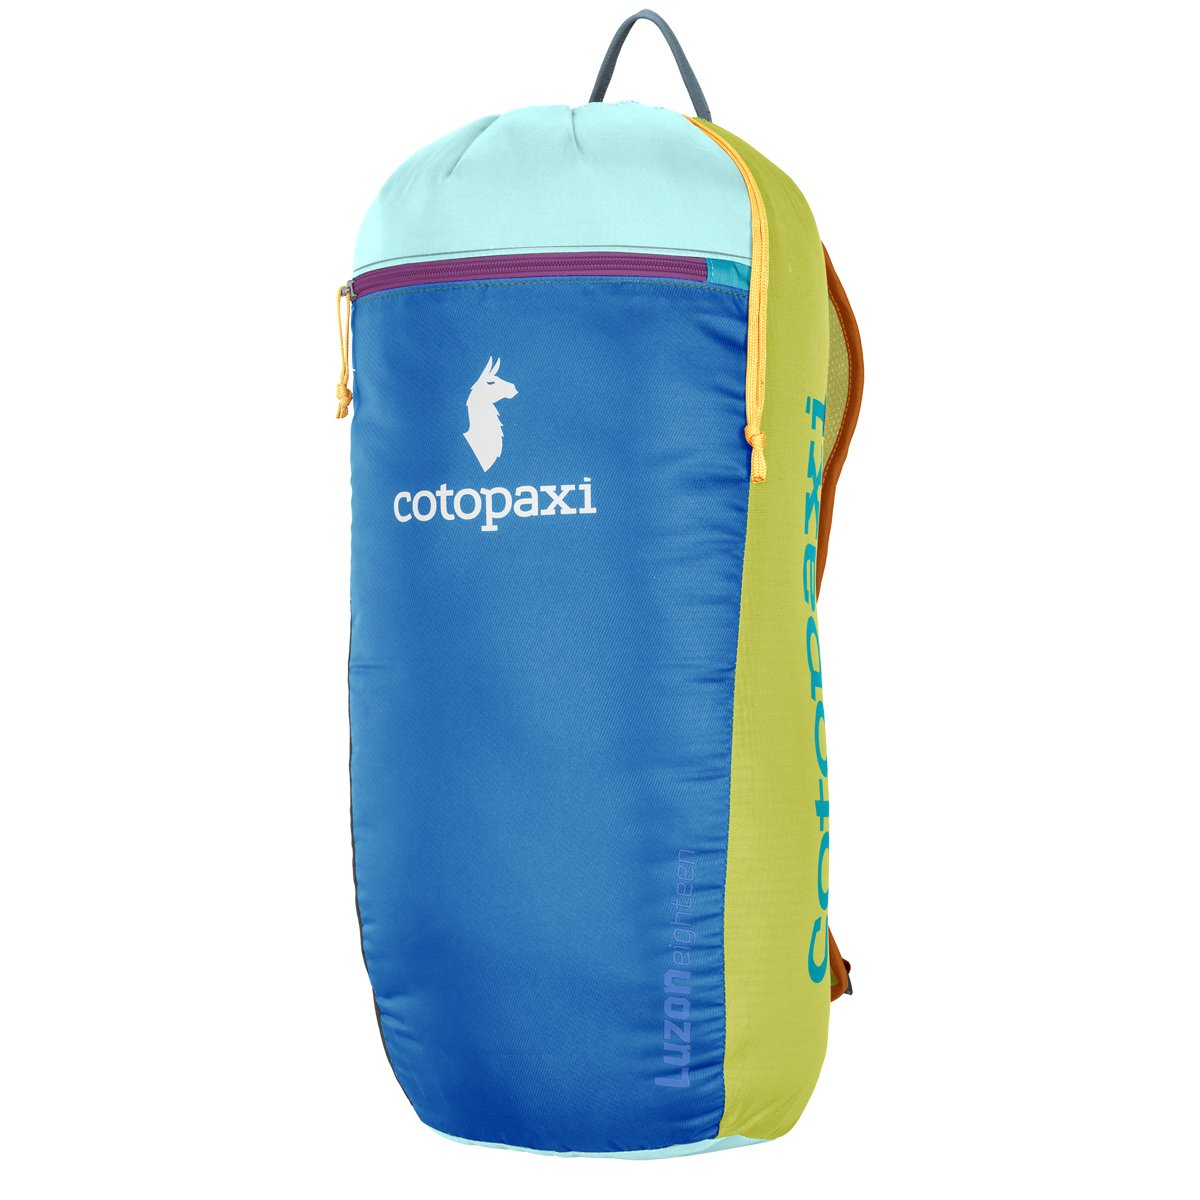 aaf5f98299 Cotopaxi Luzon 18L Durable Lightweight Nylon Hiking Packable Daypack  Backpack  Amazon.in  Sports